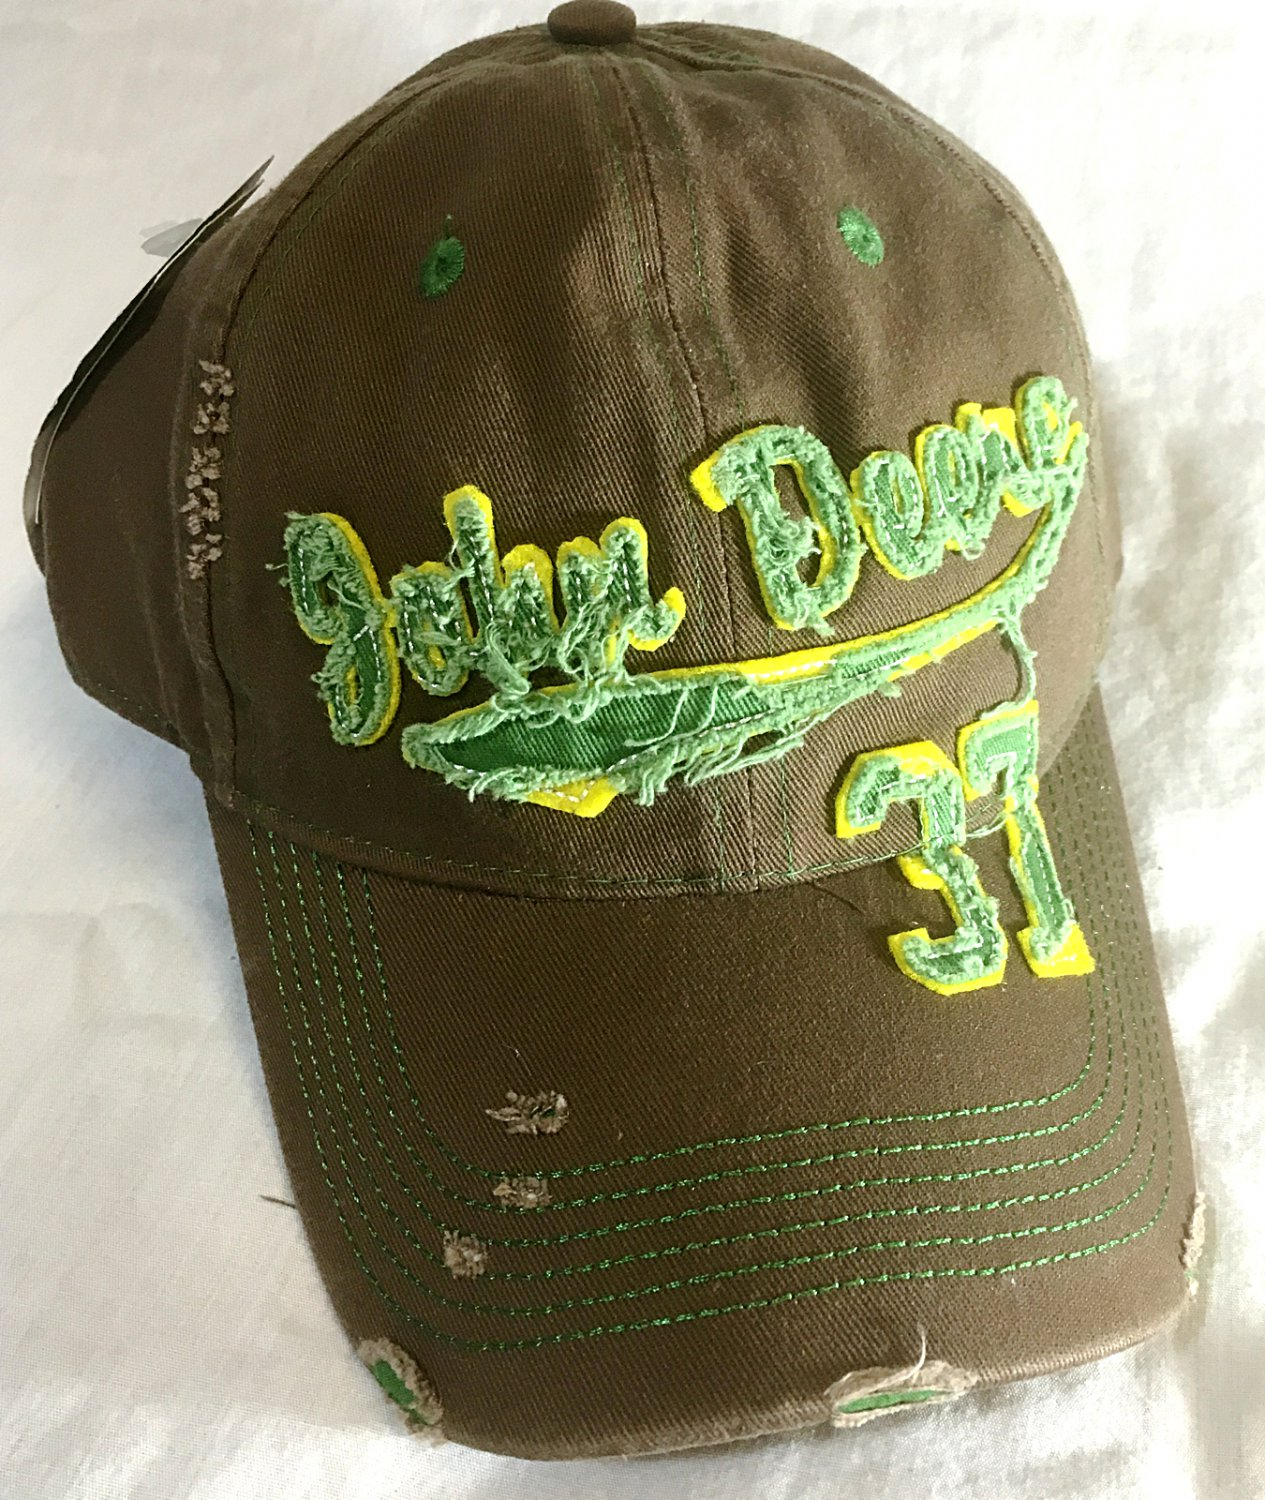 John Deere 37 Distressed Twill Baseball Cap - Size: One-Size - NEW w/Tags